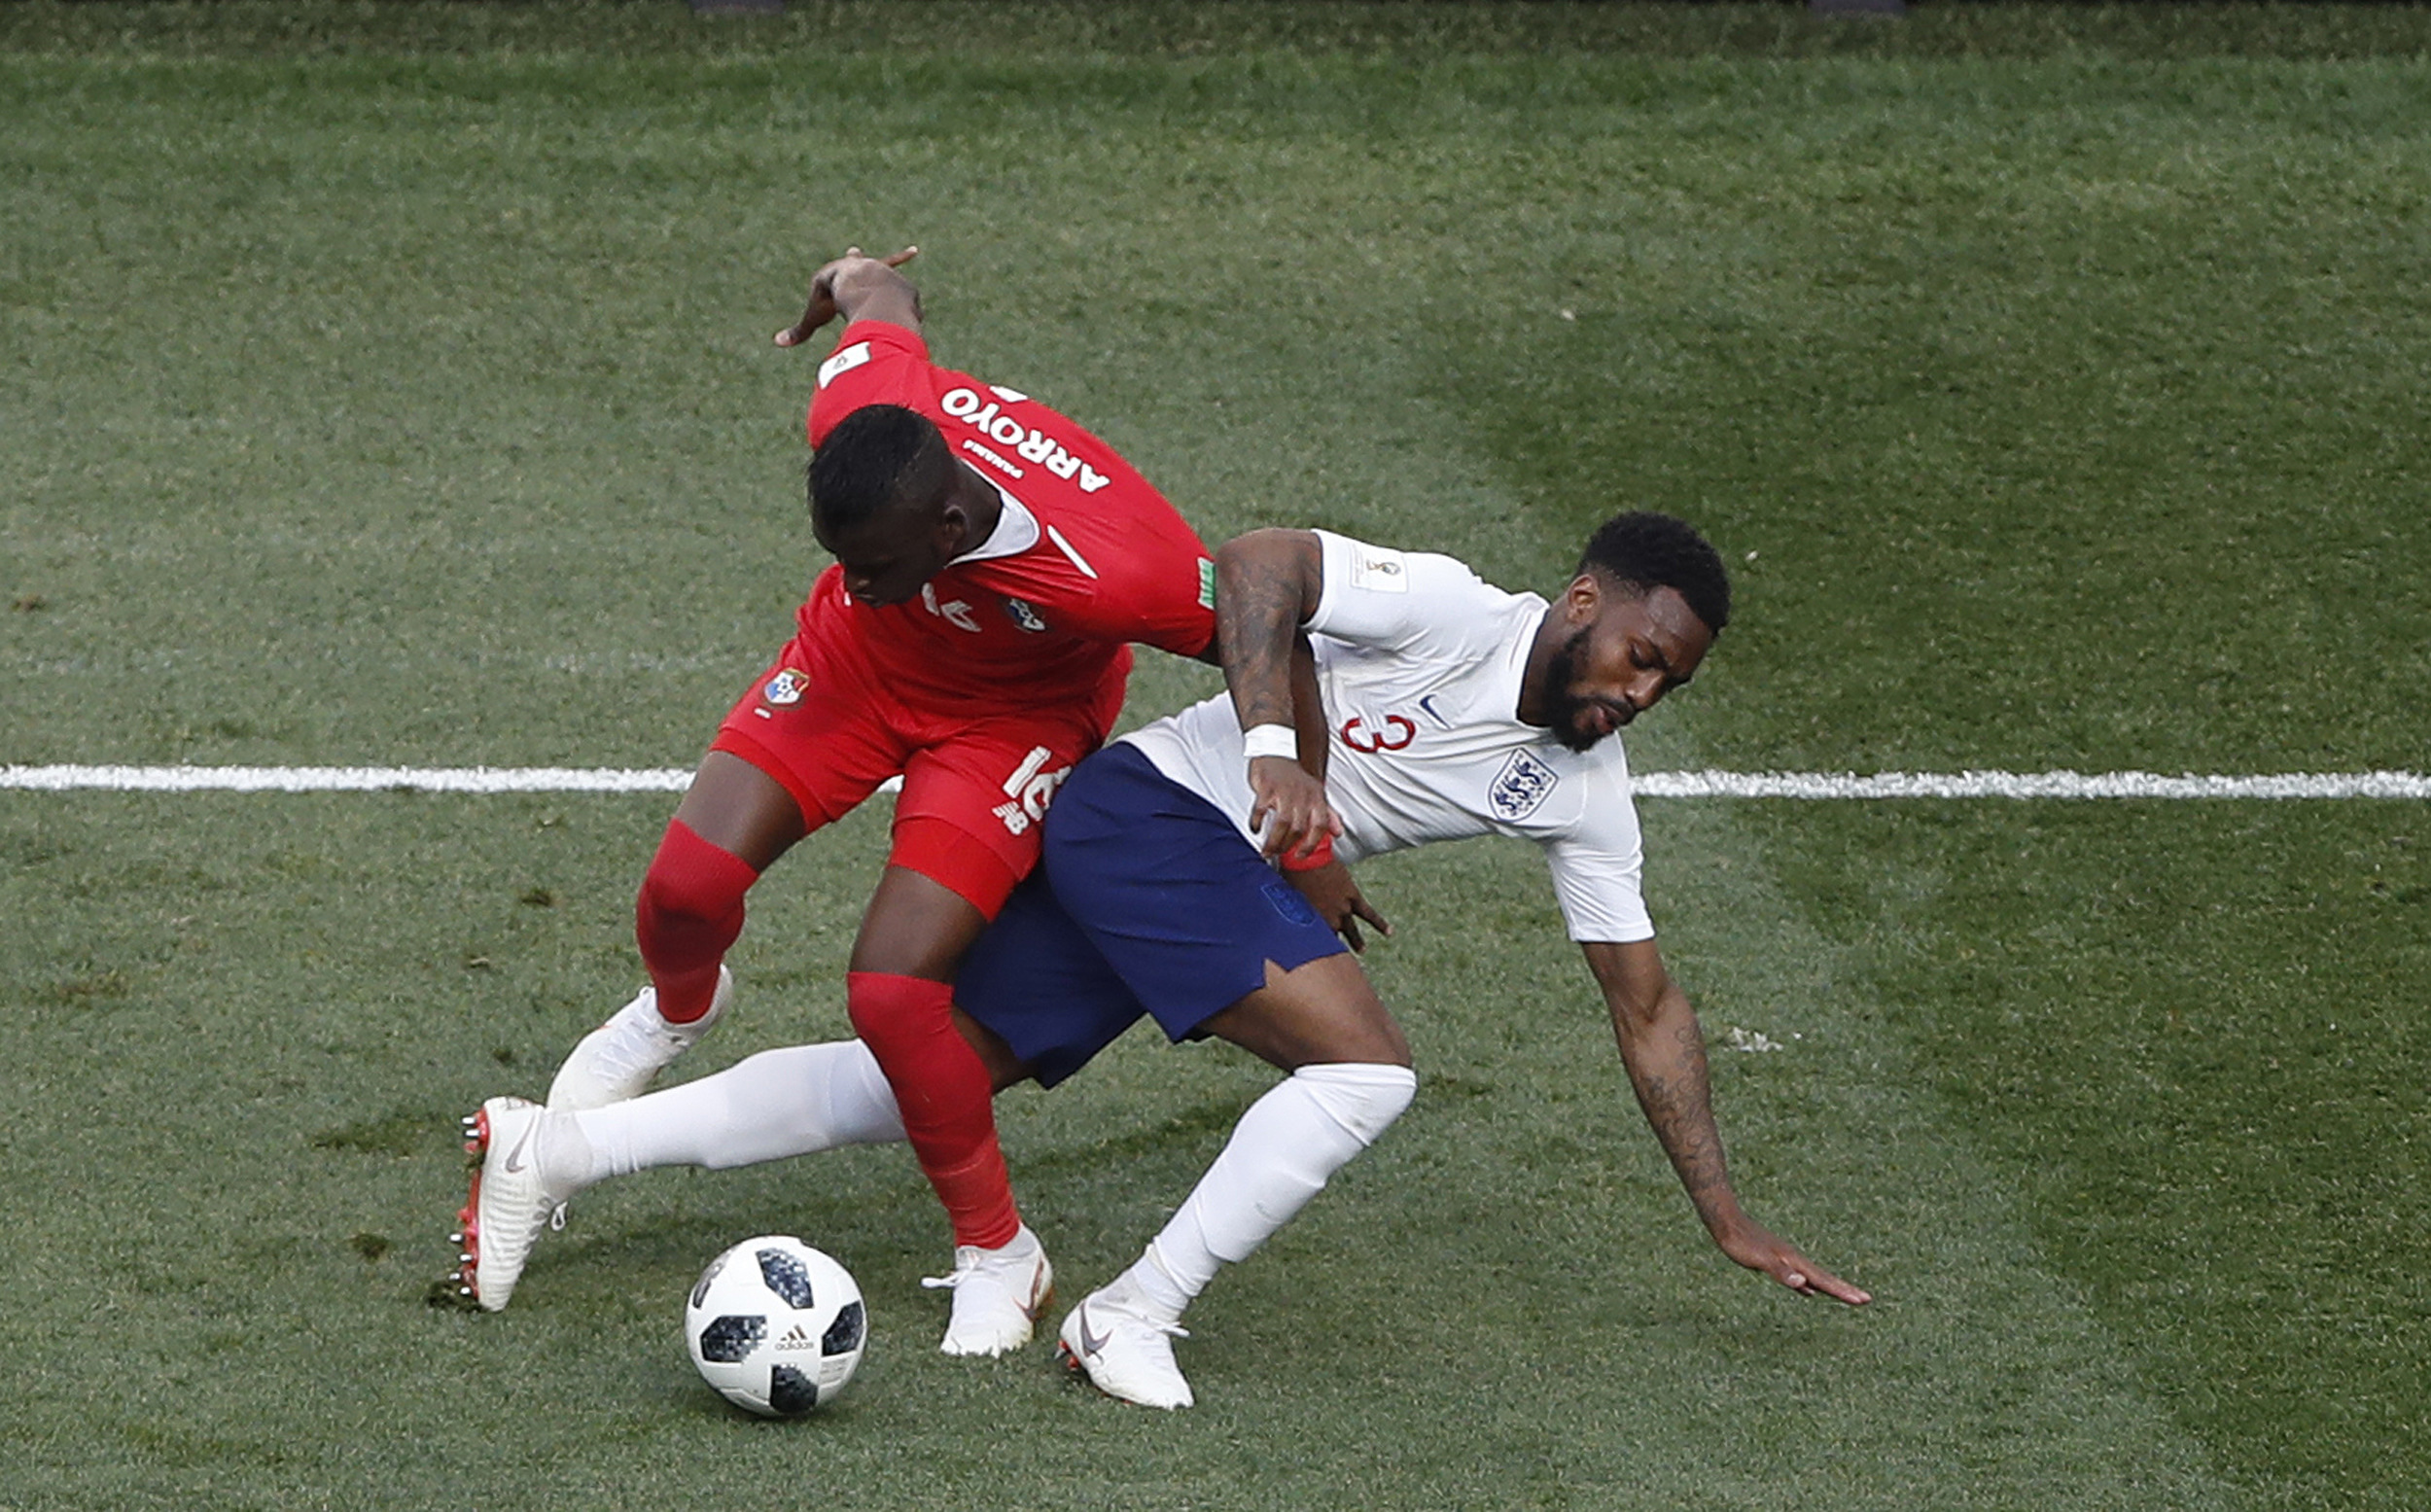 <div class='meta'><div class='origin-logo' data-origin='none'></div><span class='caption-text' data-credit='Darko Bandic/AP Photo'>Panama's Abdiel Arroyo, and England's Danny Rose fight for the ball during the group G match at the Nizhny Novgorod Stadium in Nizhny Novgorod, Russia, Sunday, June 24, 2018.</span></div>